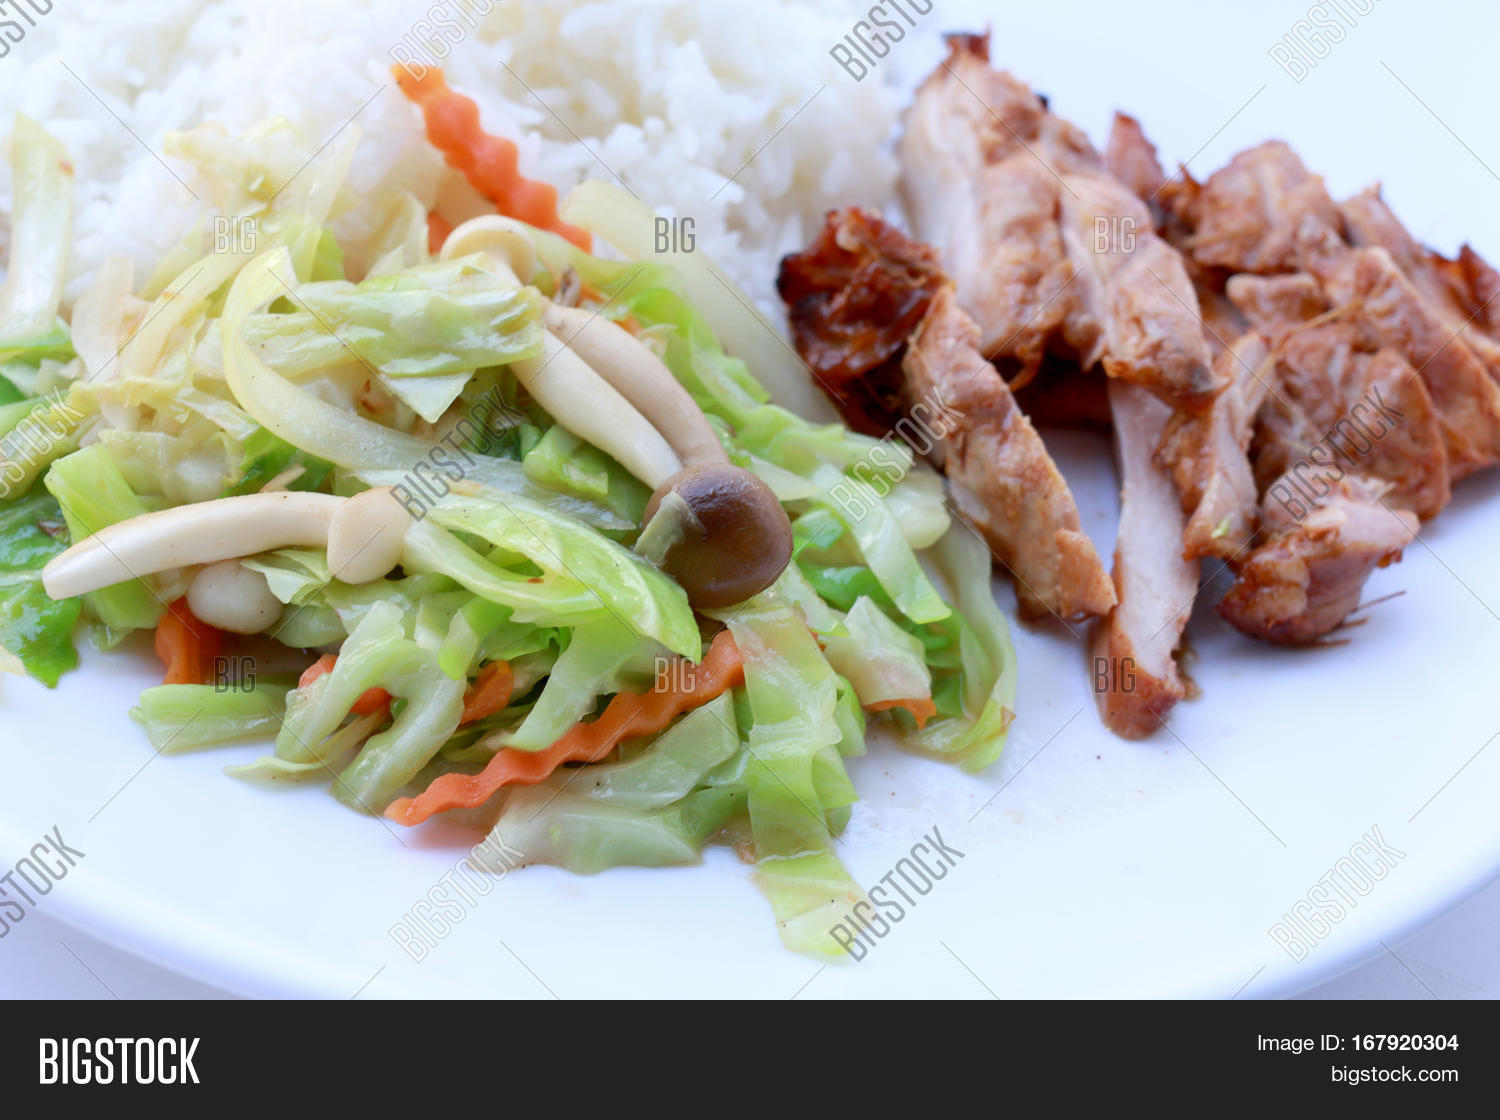 Stir Fried Vegetables Image Photo Free Trial Bigstock